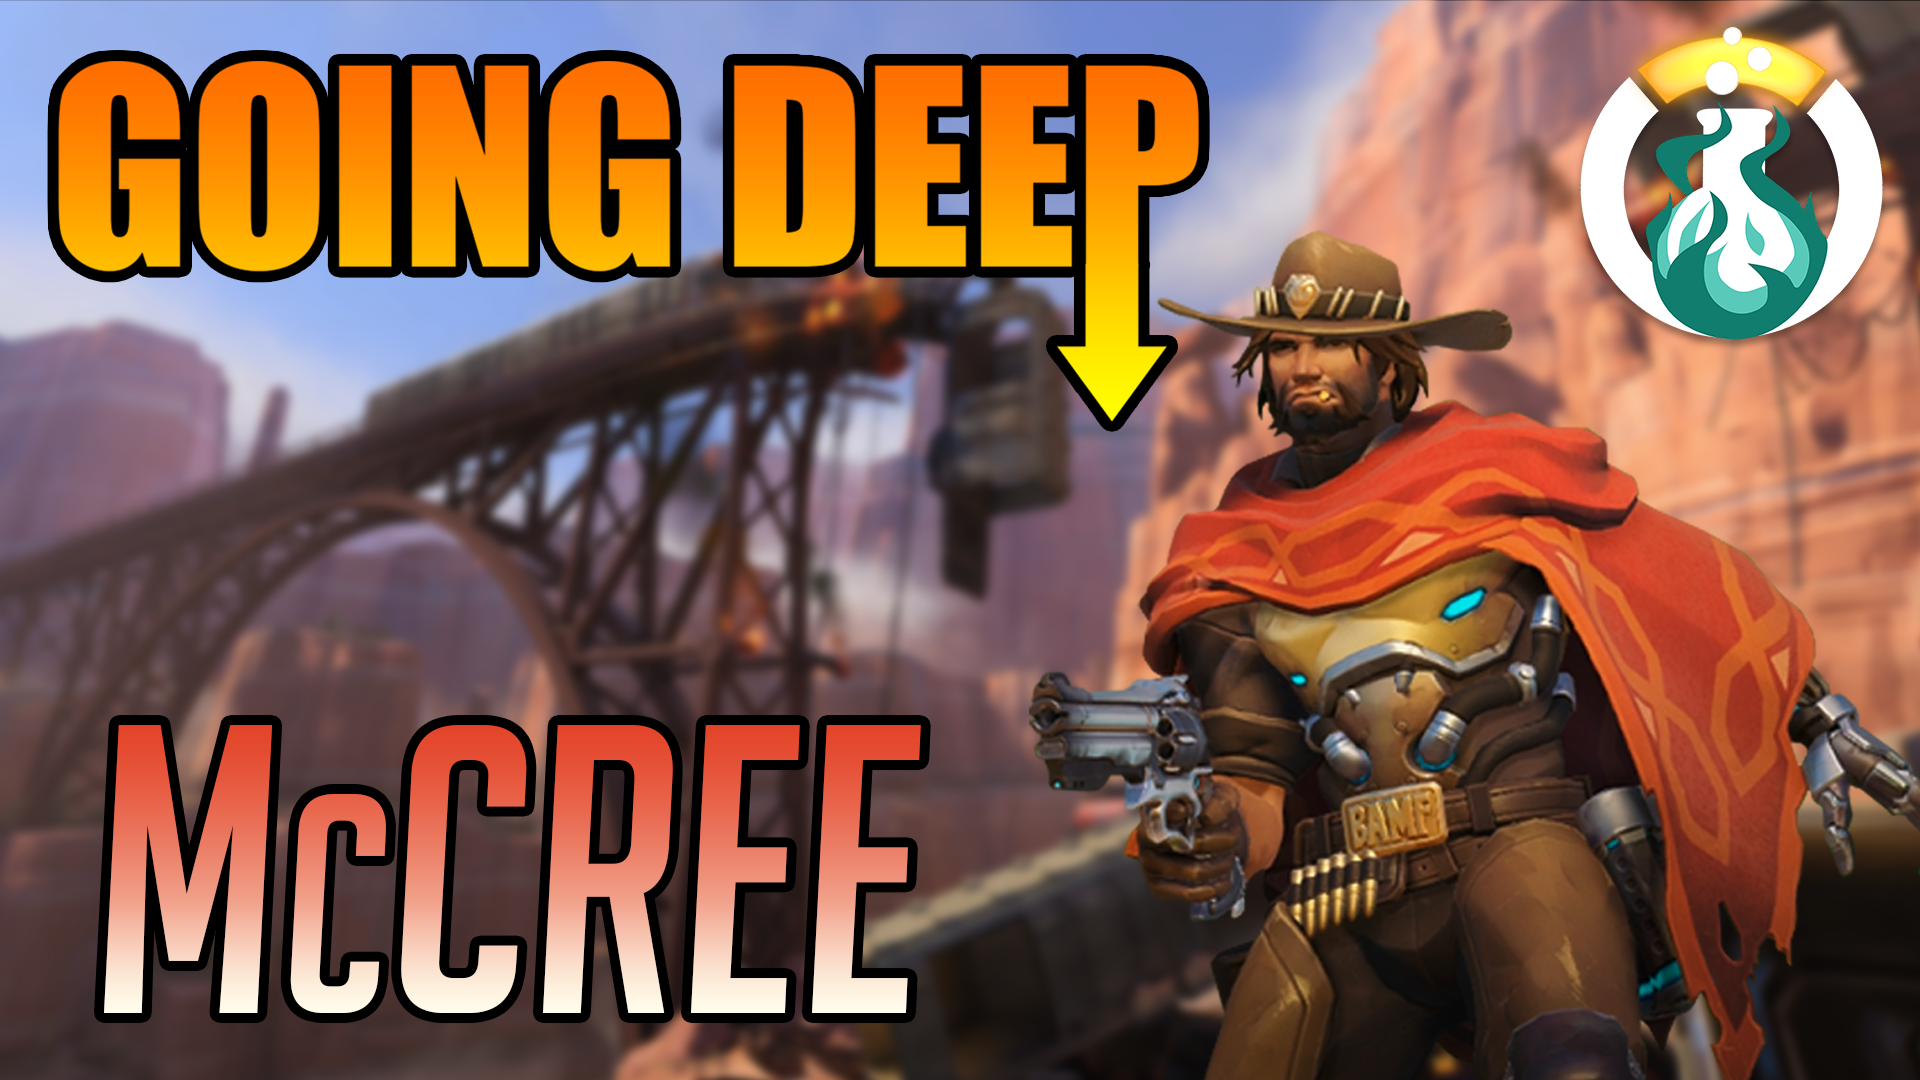 Omnic-Lab-YouTube-Card-66-McCree.png